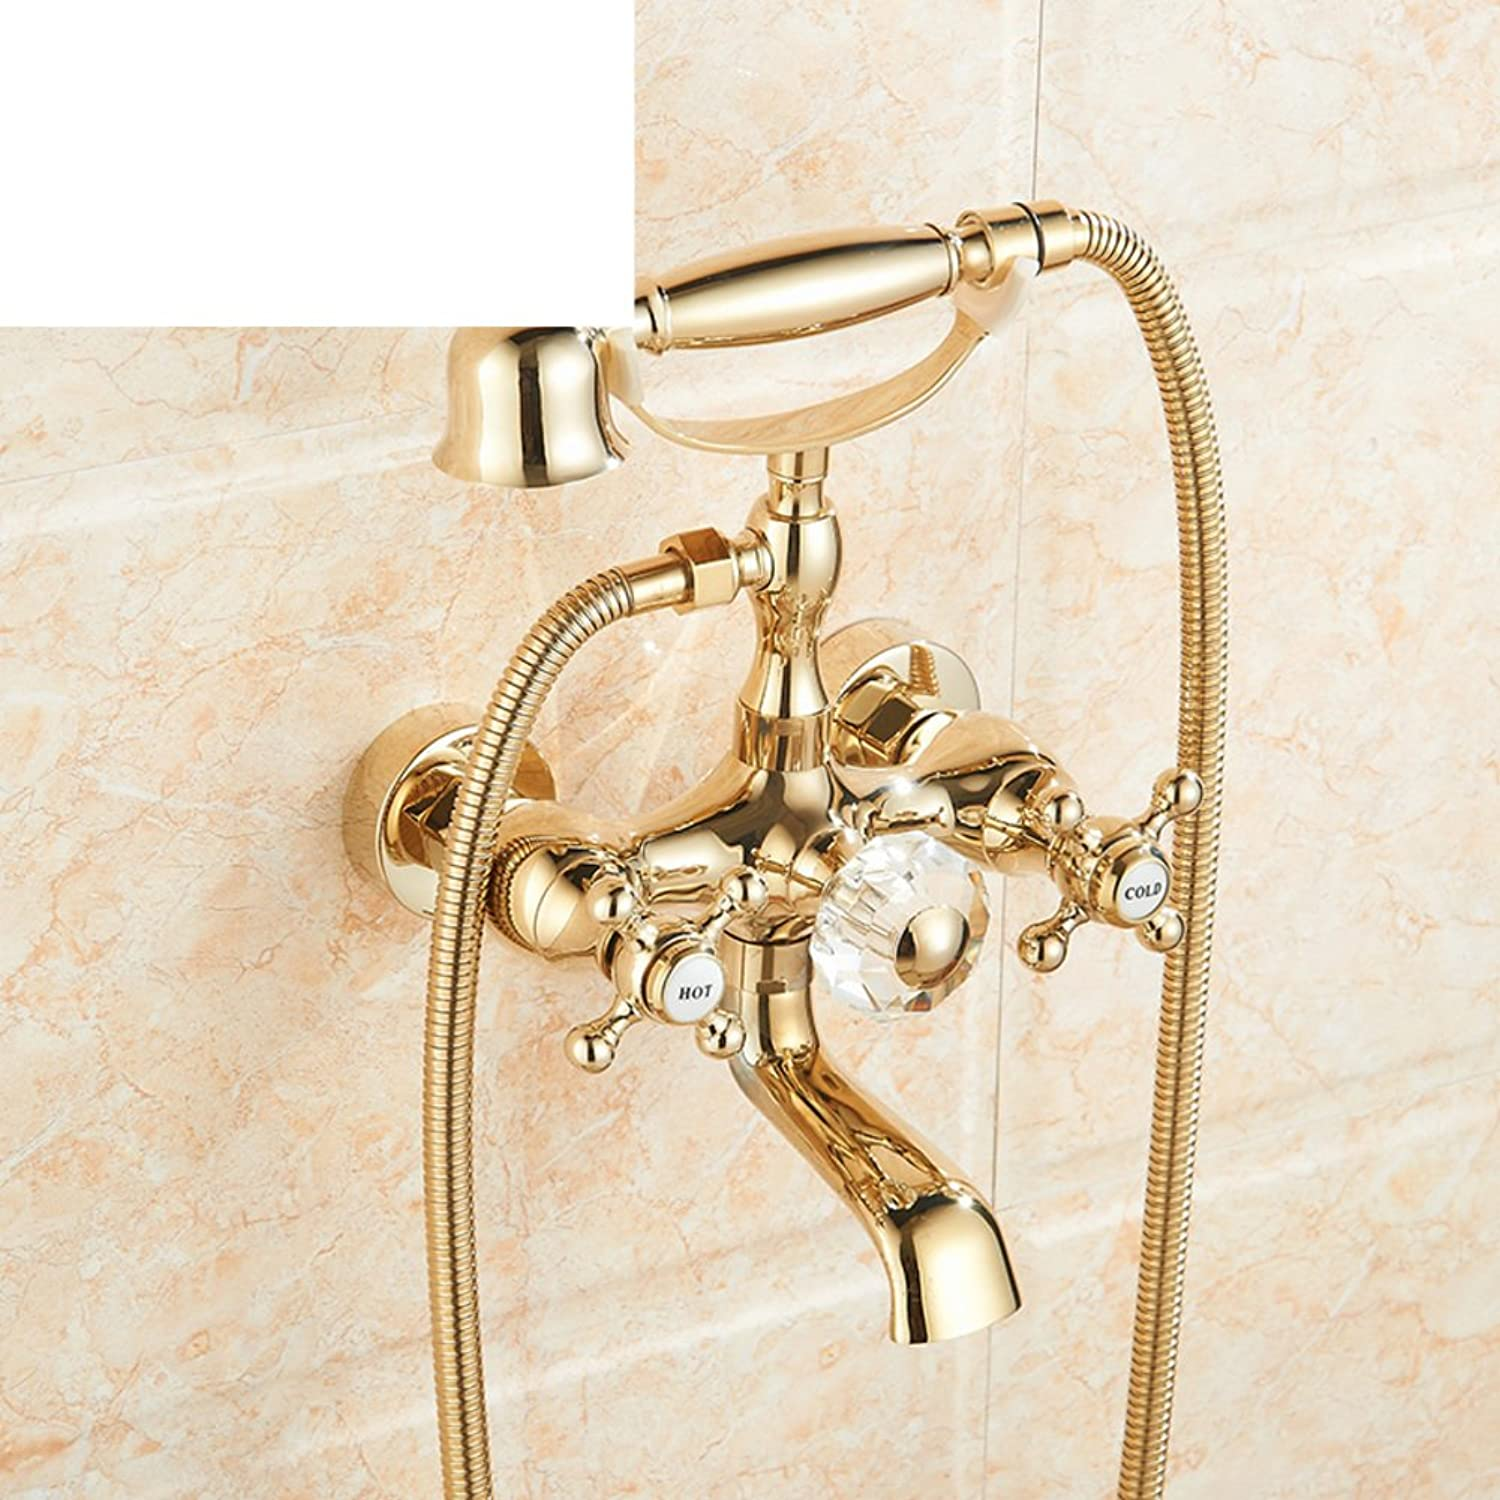 European-Style Shower stall Shower Set Antique Double Bathtub Faucet hot and Cold Simple Shower-A